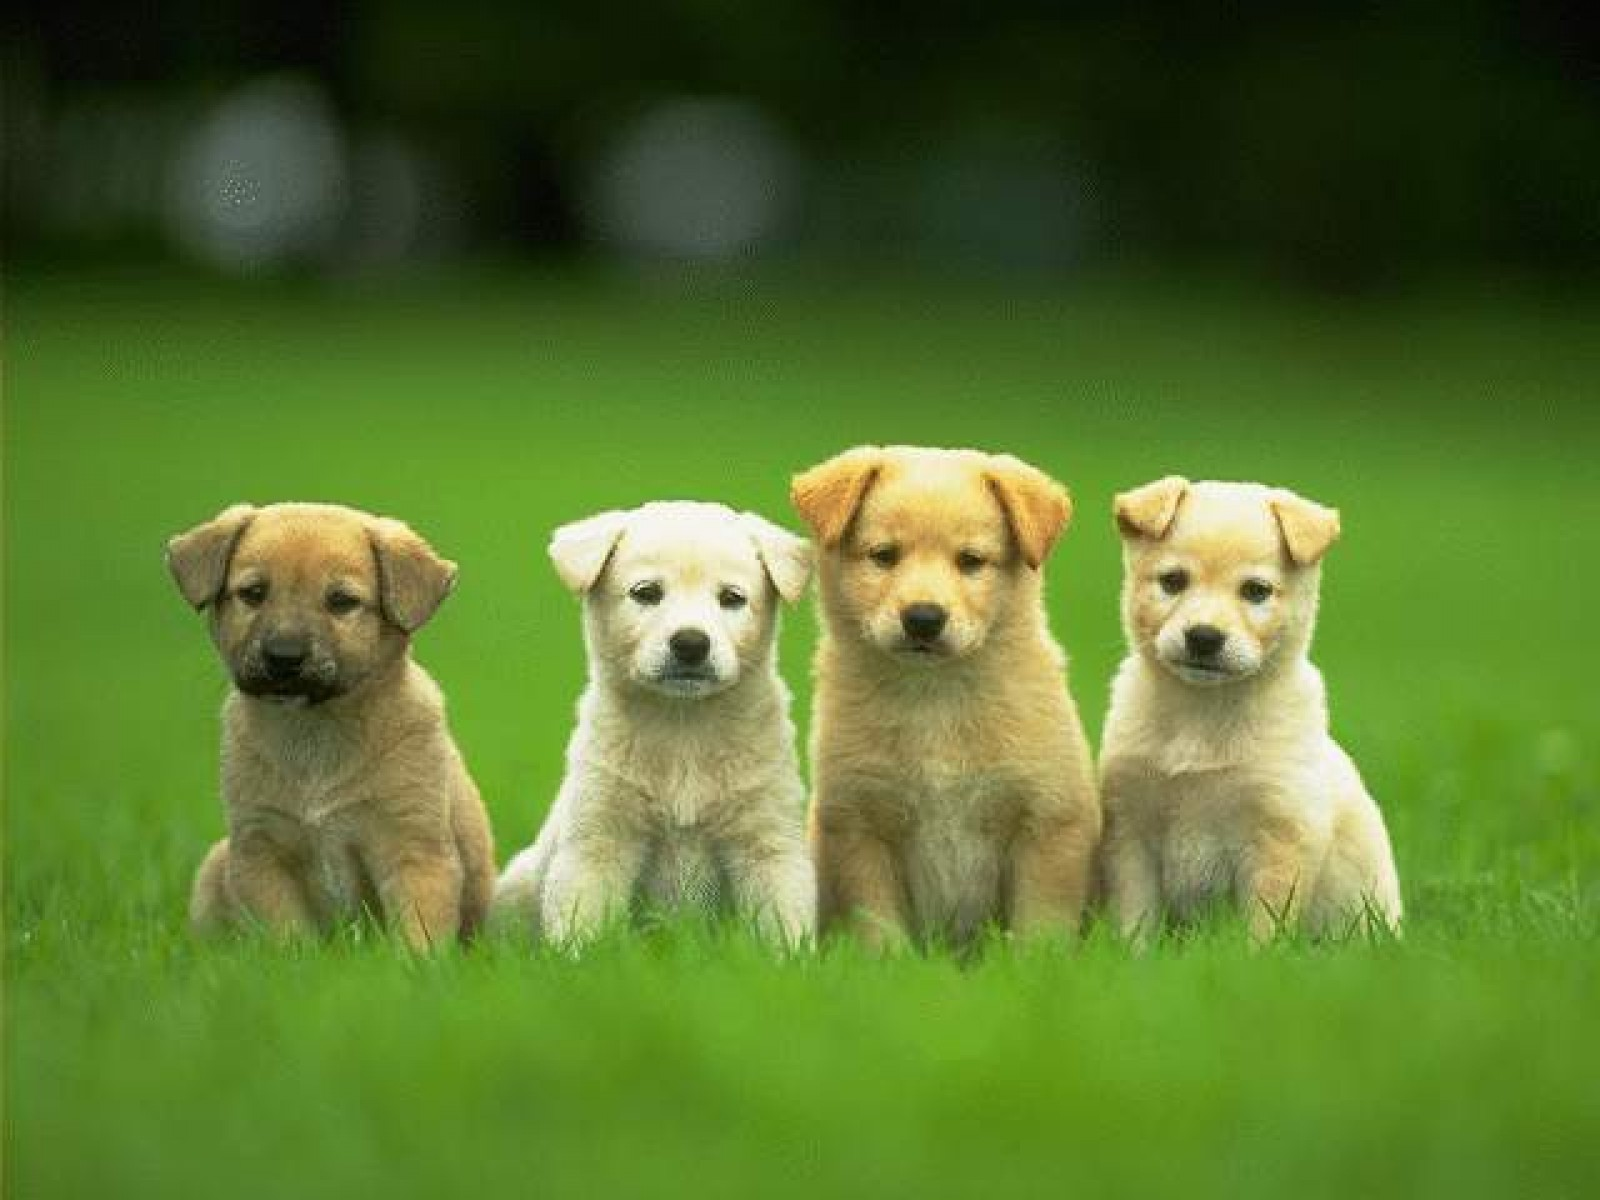 cute and funny puppies small dog animals dogs high definition wallpaper